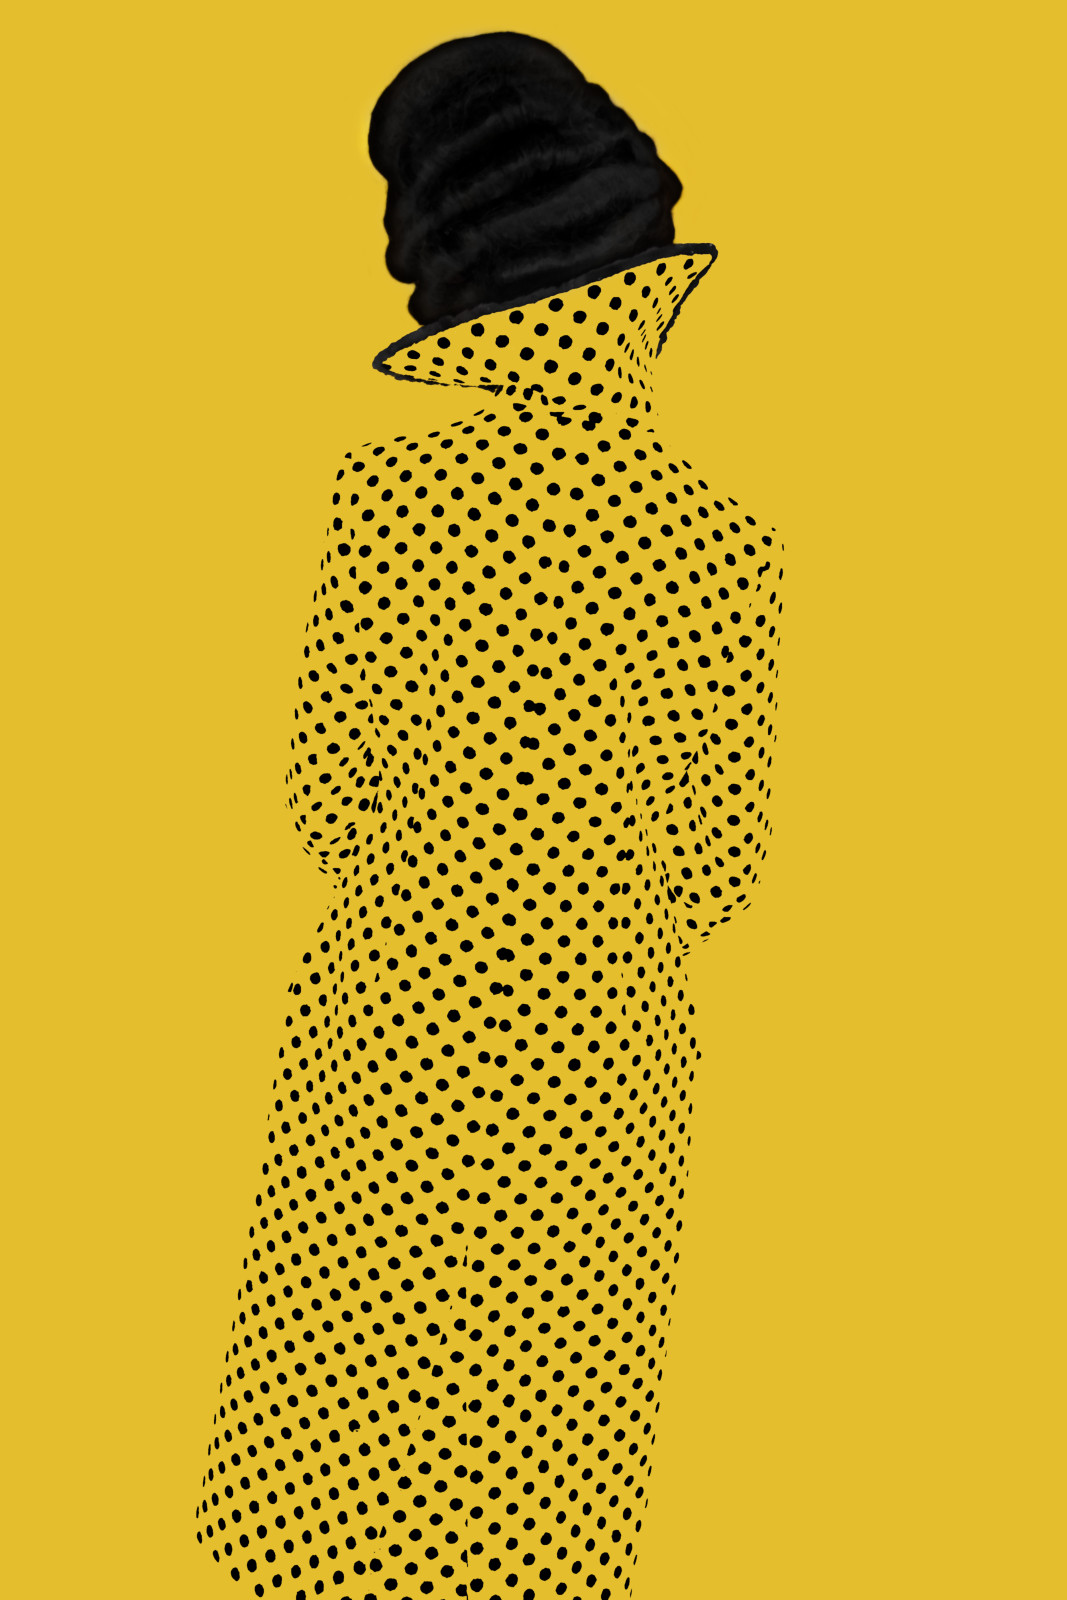 Erik Madigan Heck, Without a Face (Yellow), Old Future, 2013